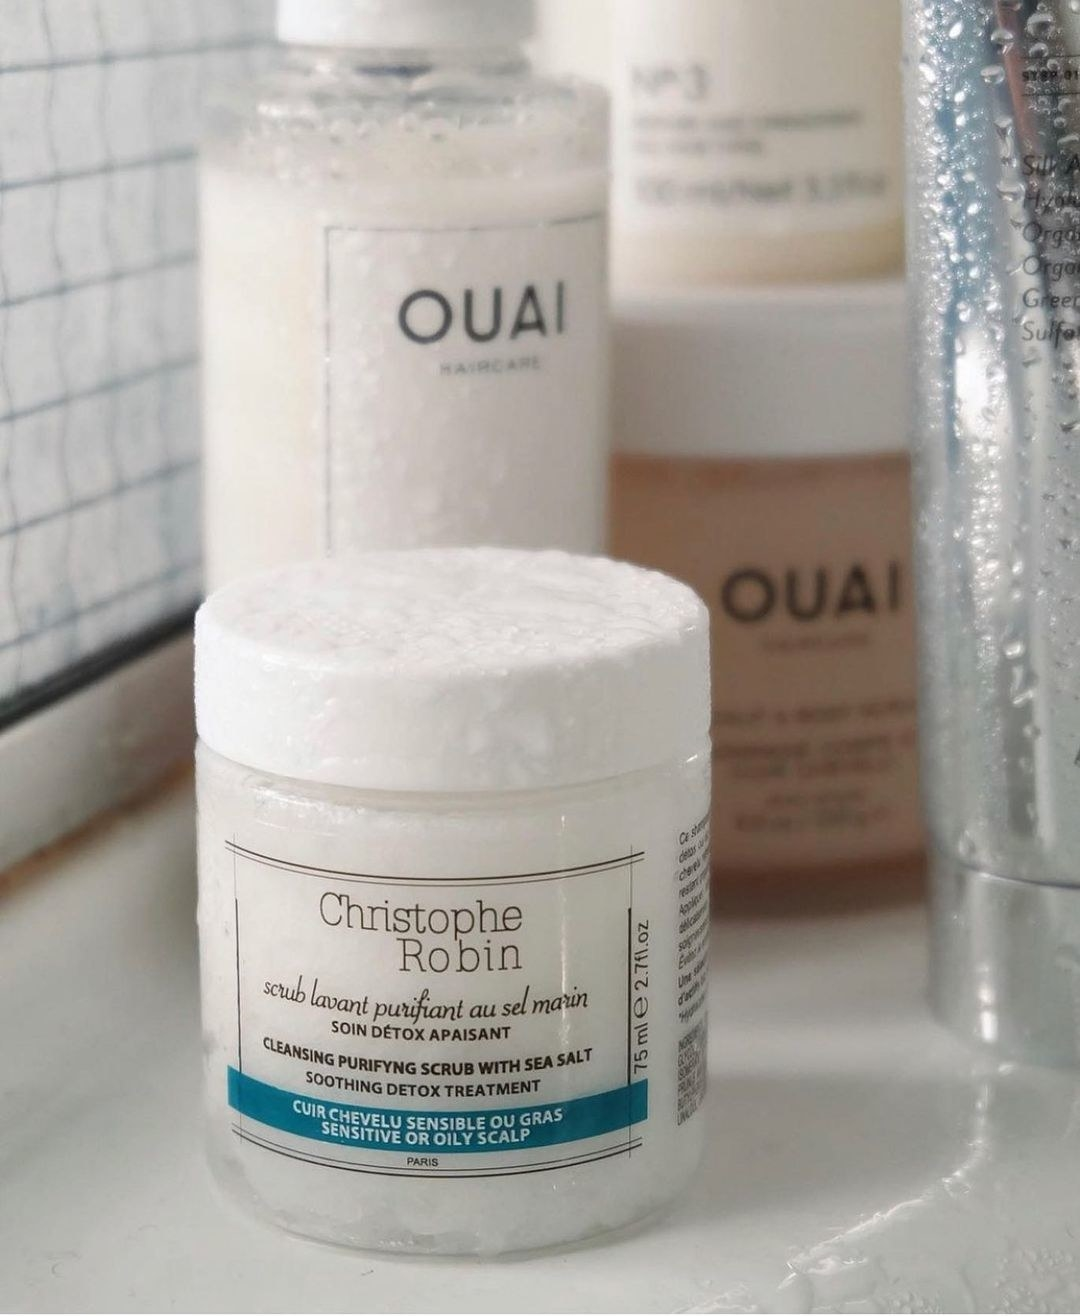 A small container of hair scrub on a counter next to other beauty products